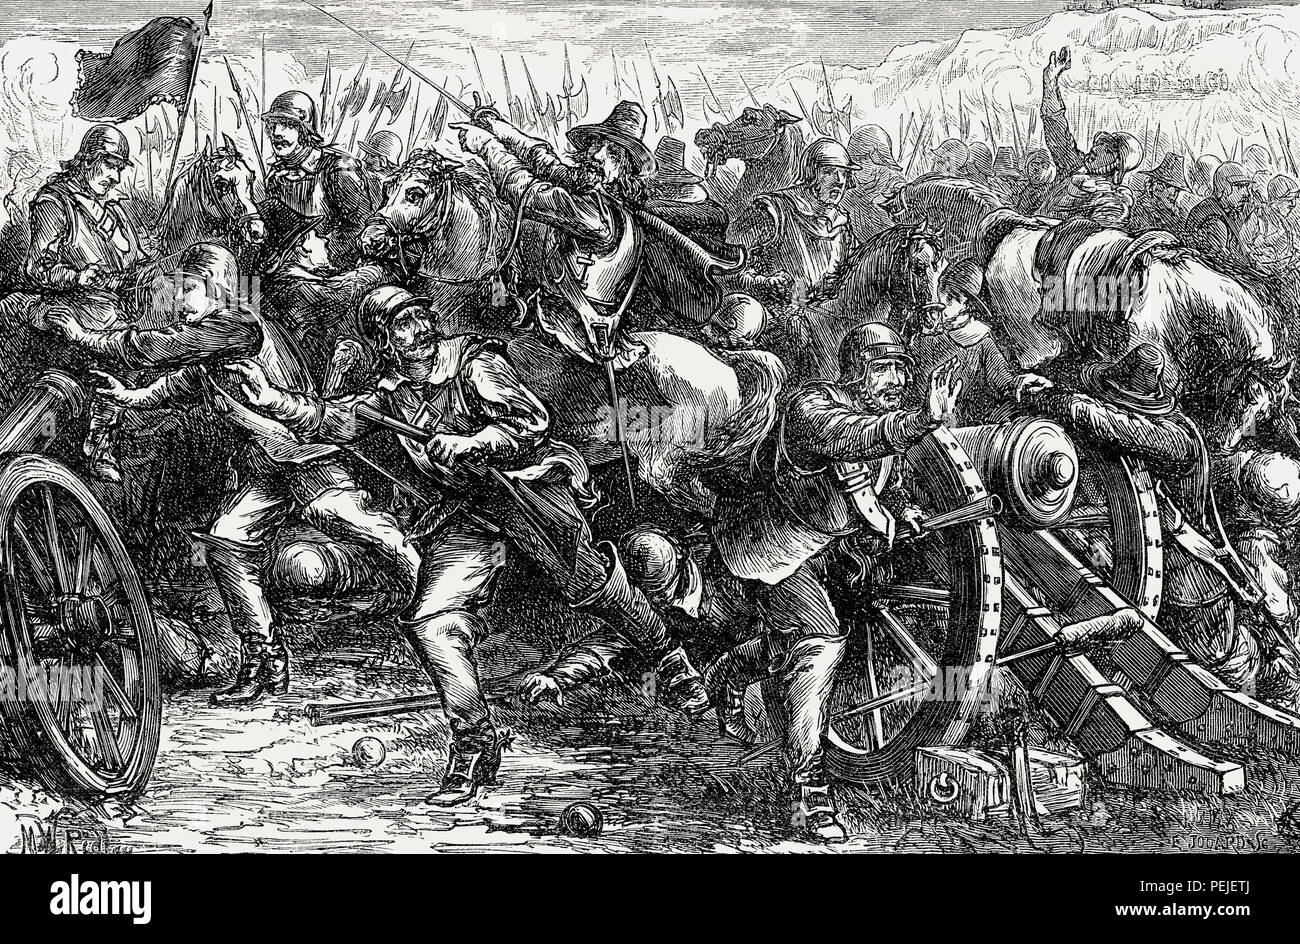 Attack on Leith, 1560, Siege of Leith, From British Battles on Land and Sea, by James Grant - Stock Image